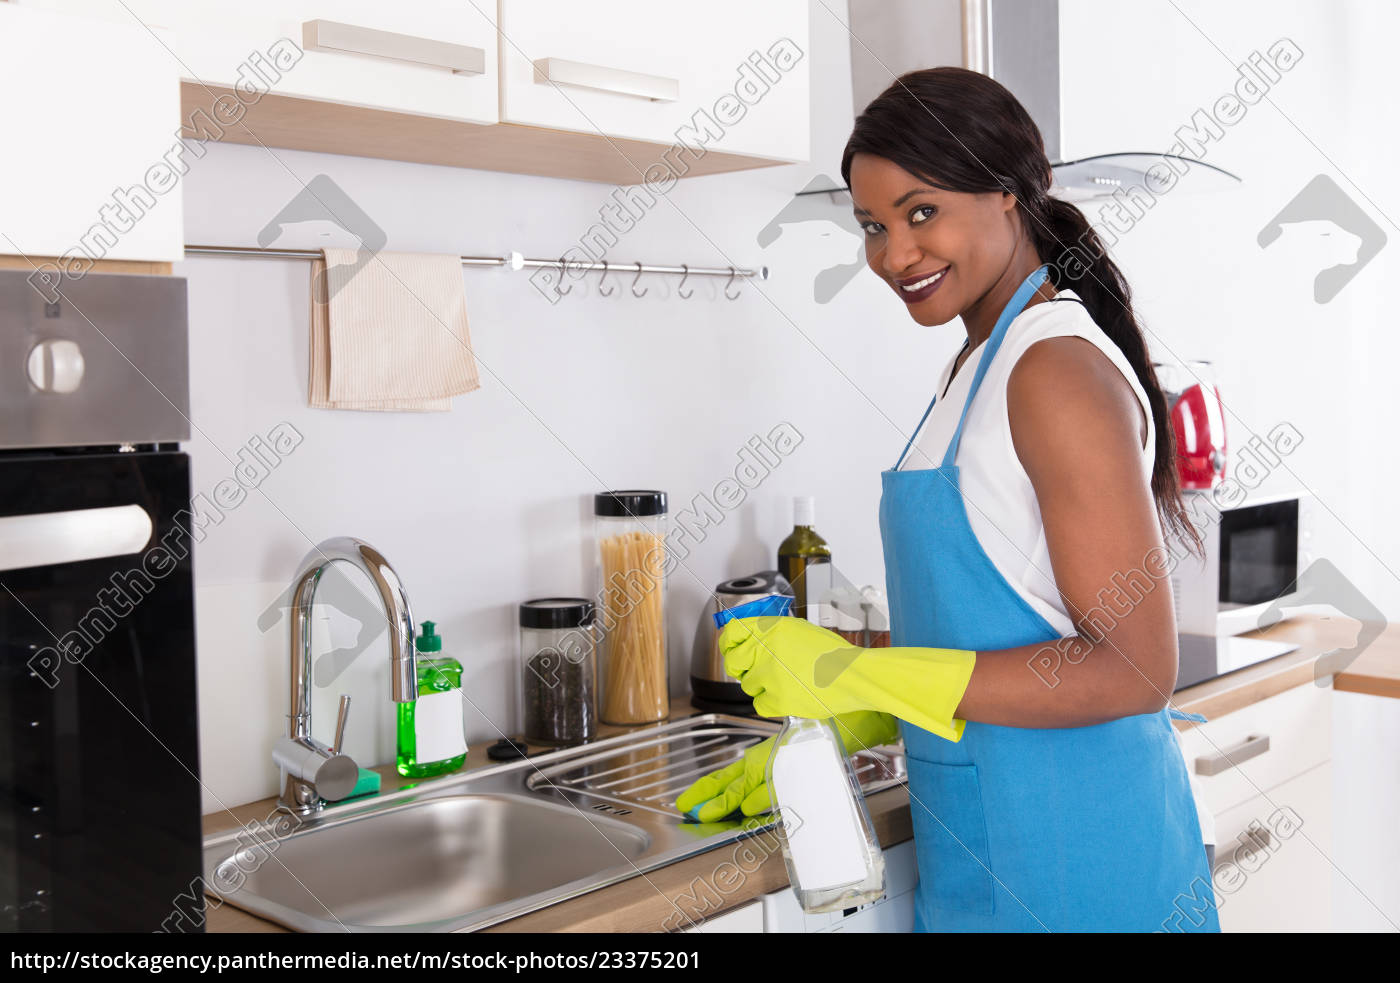 Woman Cleaning Kitchen Sink With Spray Bottle Stock Photo 23375201 Panthermedia Stock Agency